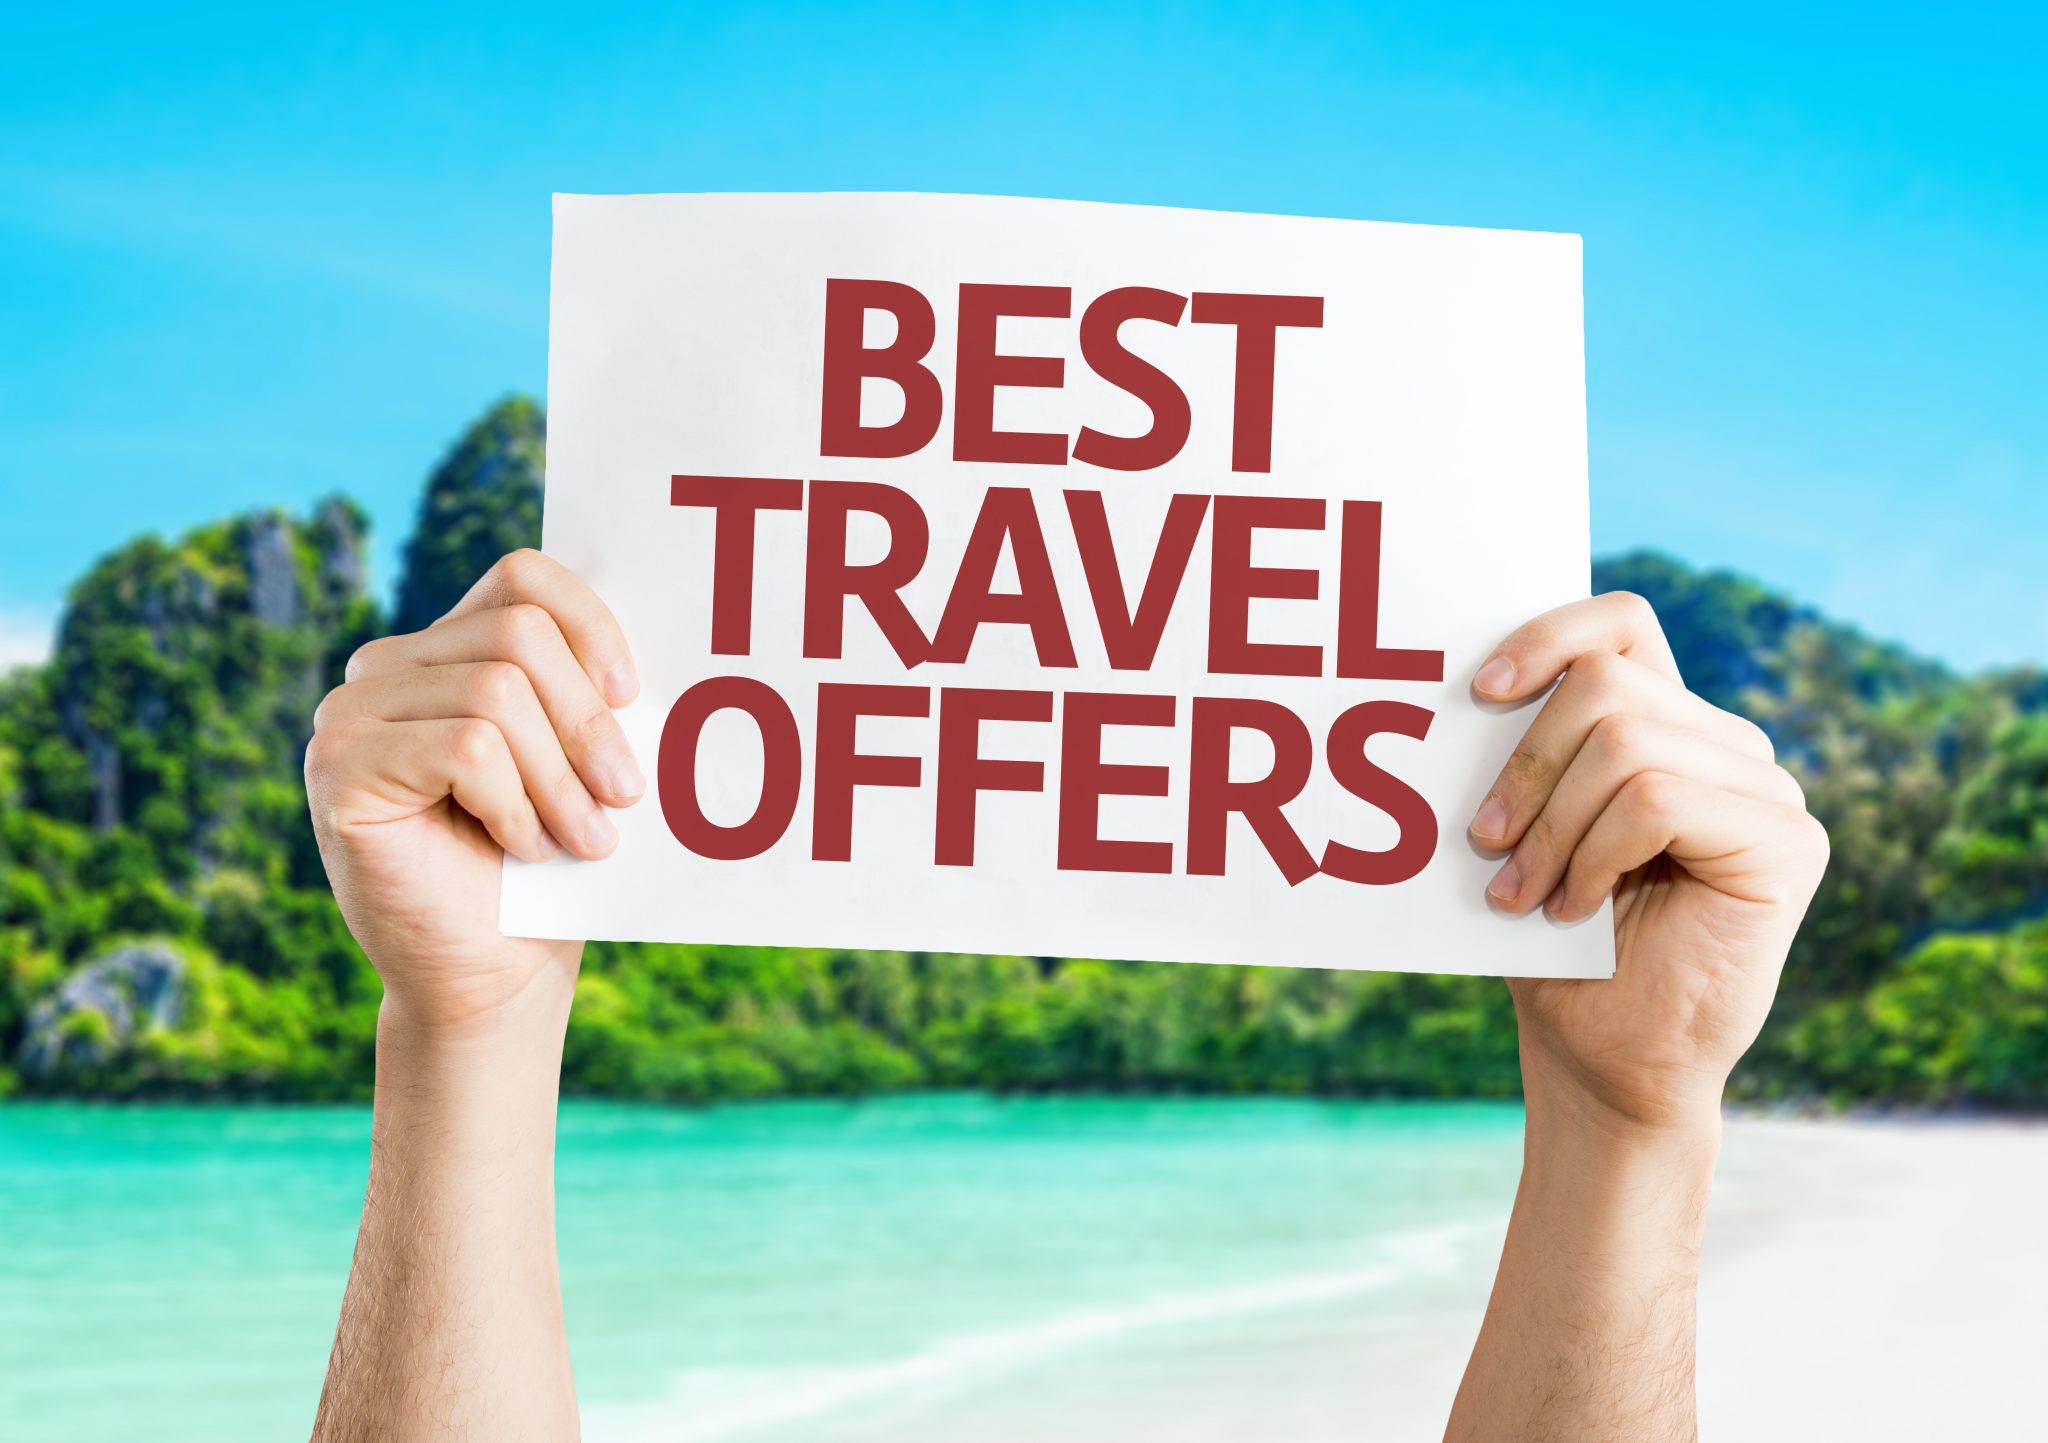 Get the Best Cruise Deals with Cruise Experts Price